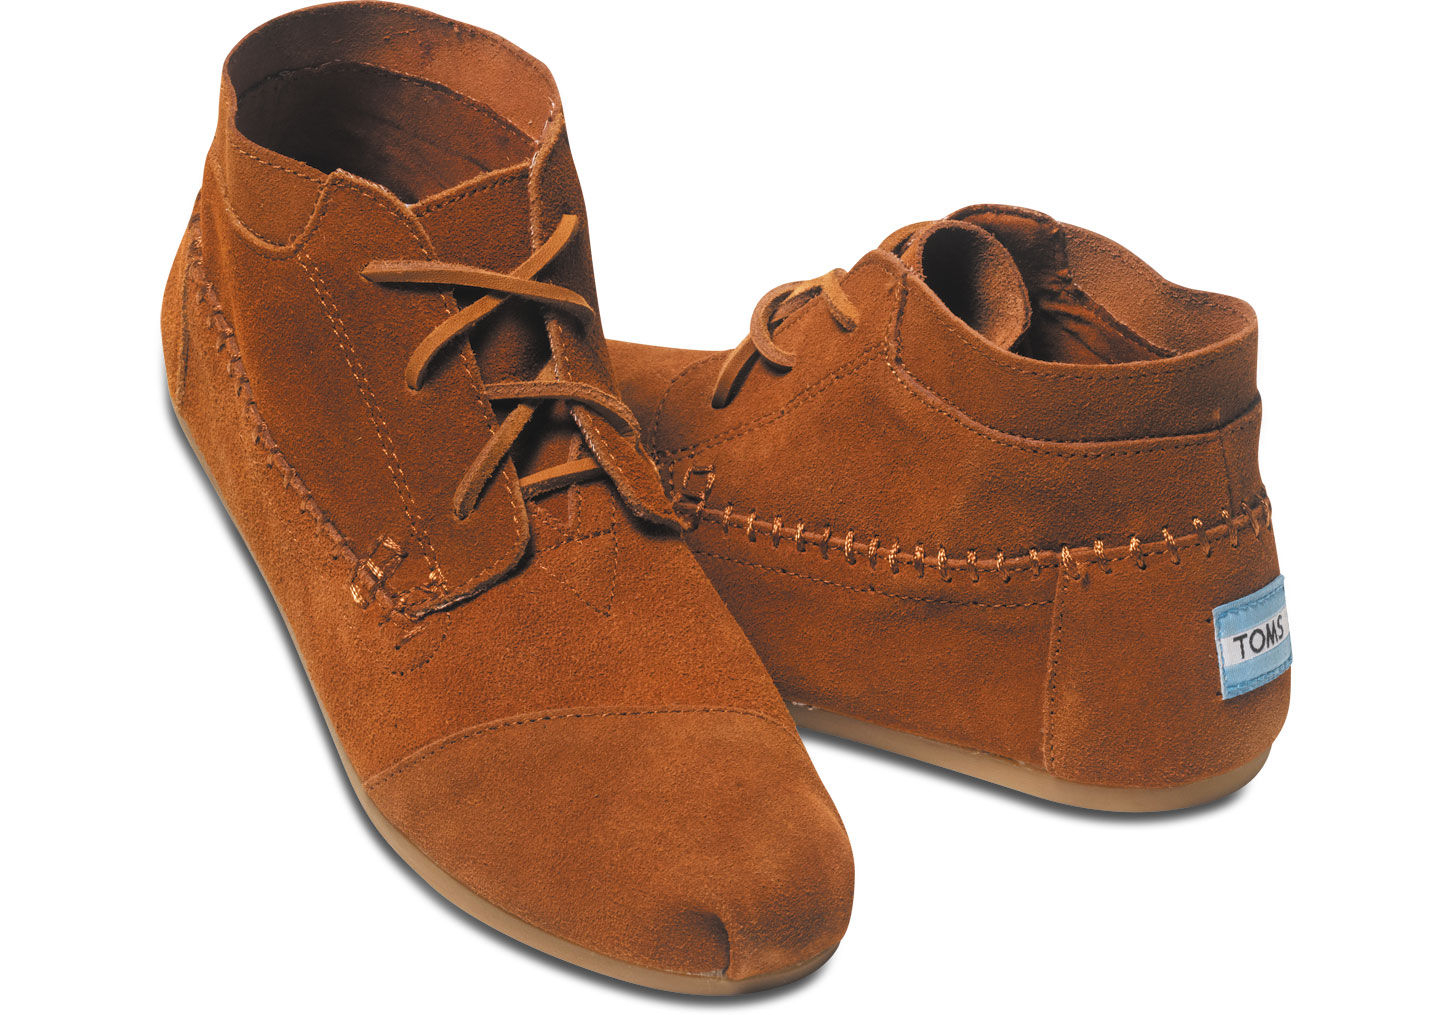 56dc2fb9068 TOMS Brown Chestnut Suede Women's Tribal Boots